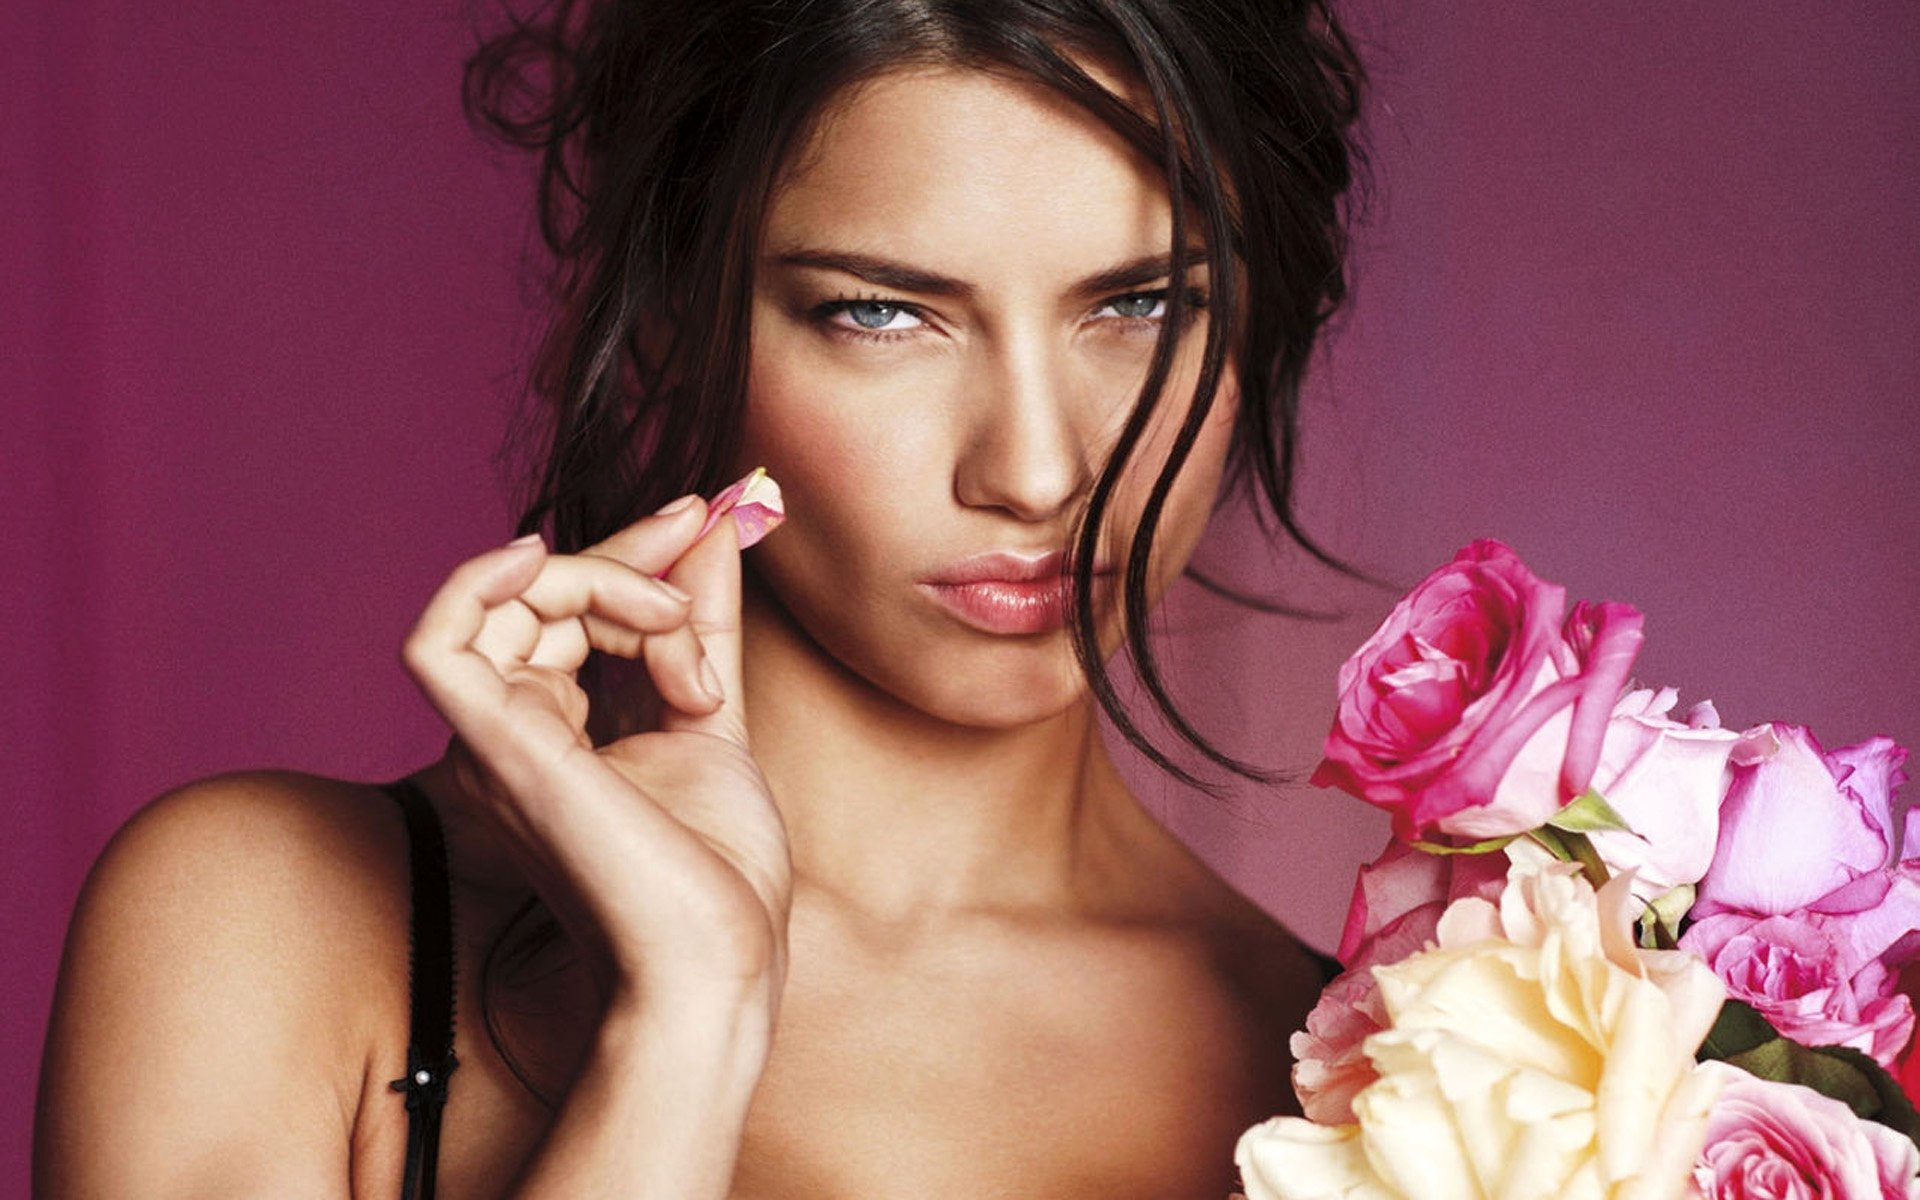 adriana lima with flowers wallpaper background